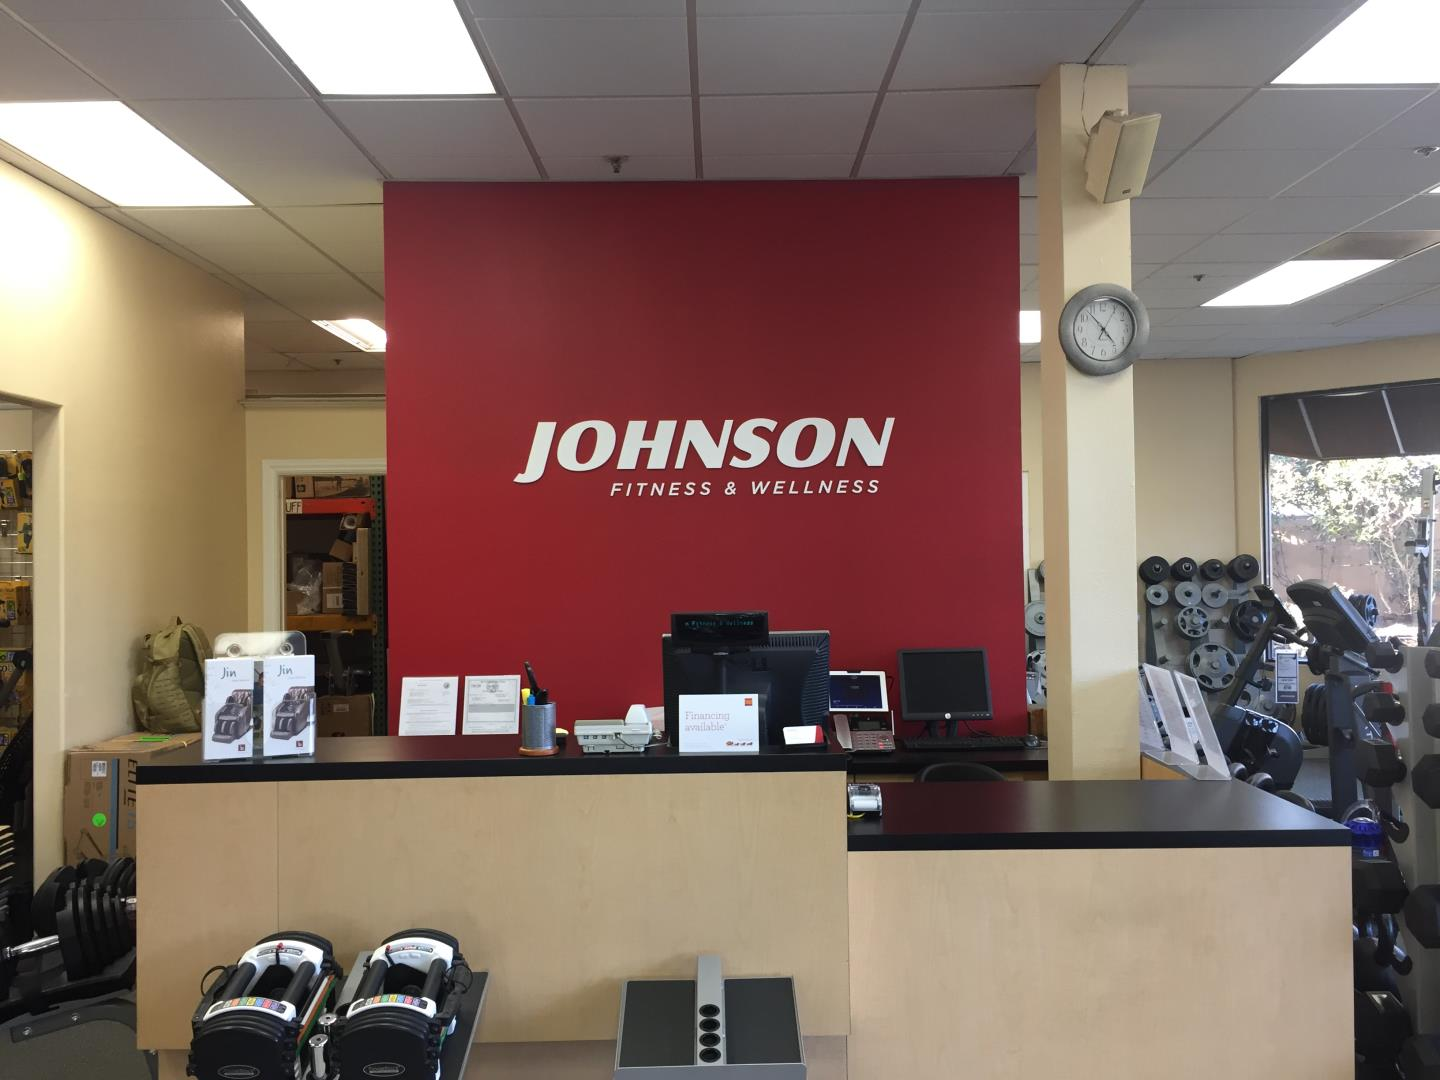 Johnson Fitness & Wellness - Laguna Niguel, CA